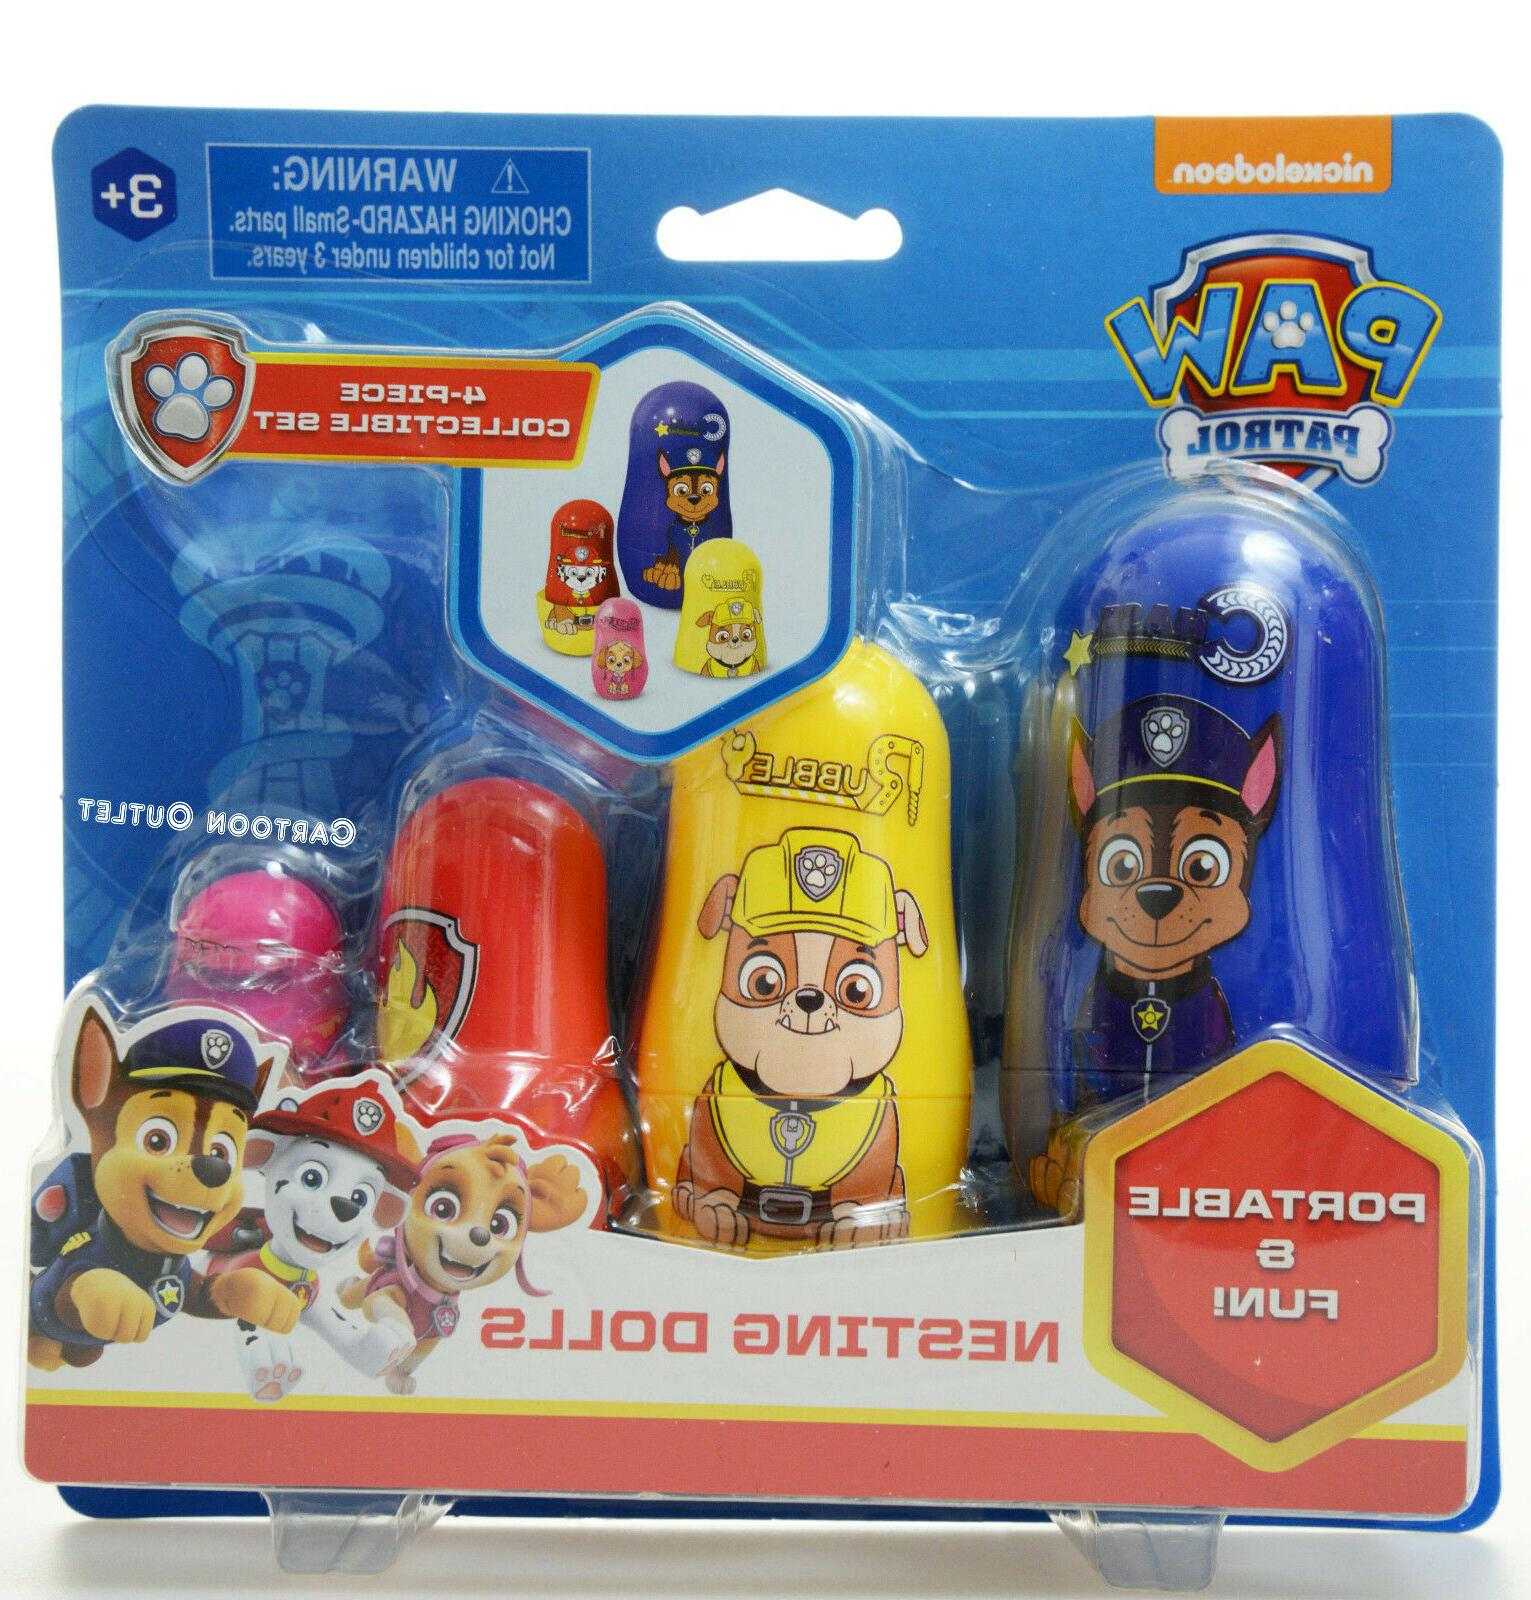 Paw Patrol Set of 4 Nesting Dolls Toys Nesting Eggs Collecti